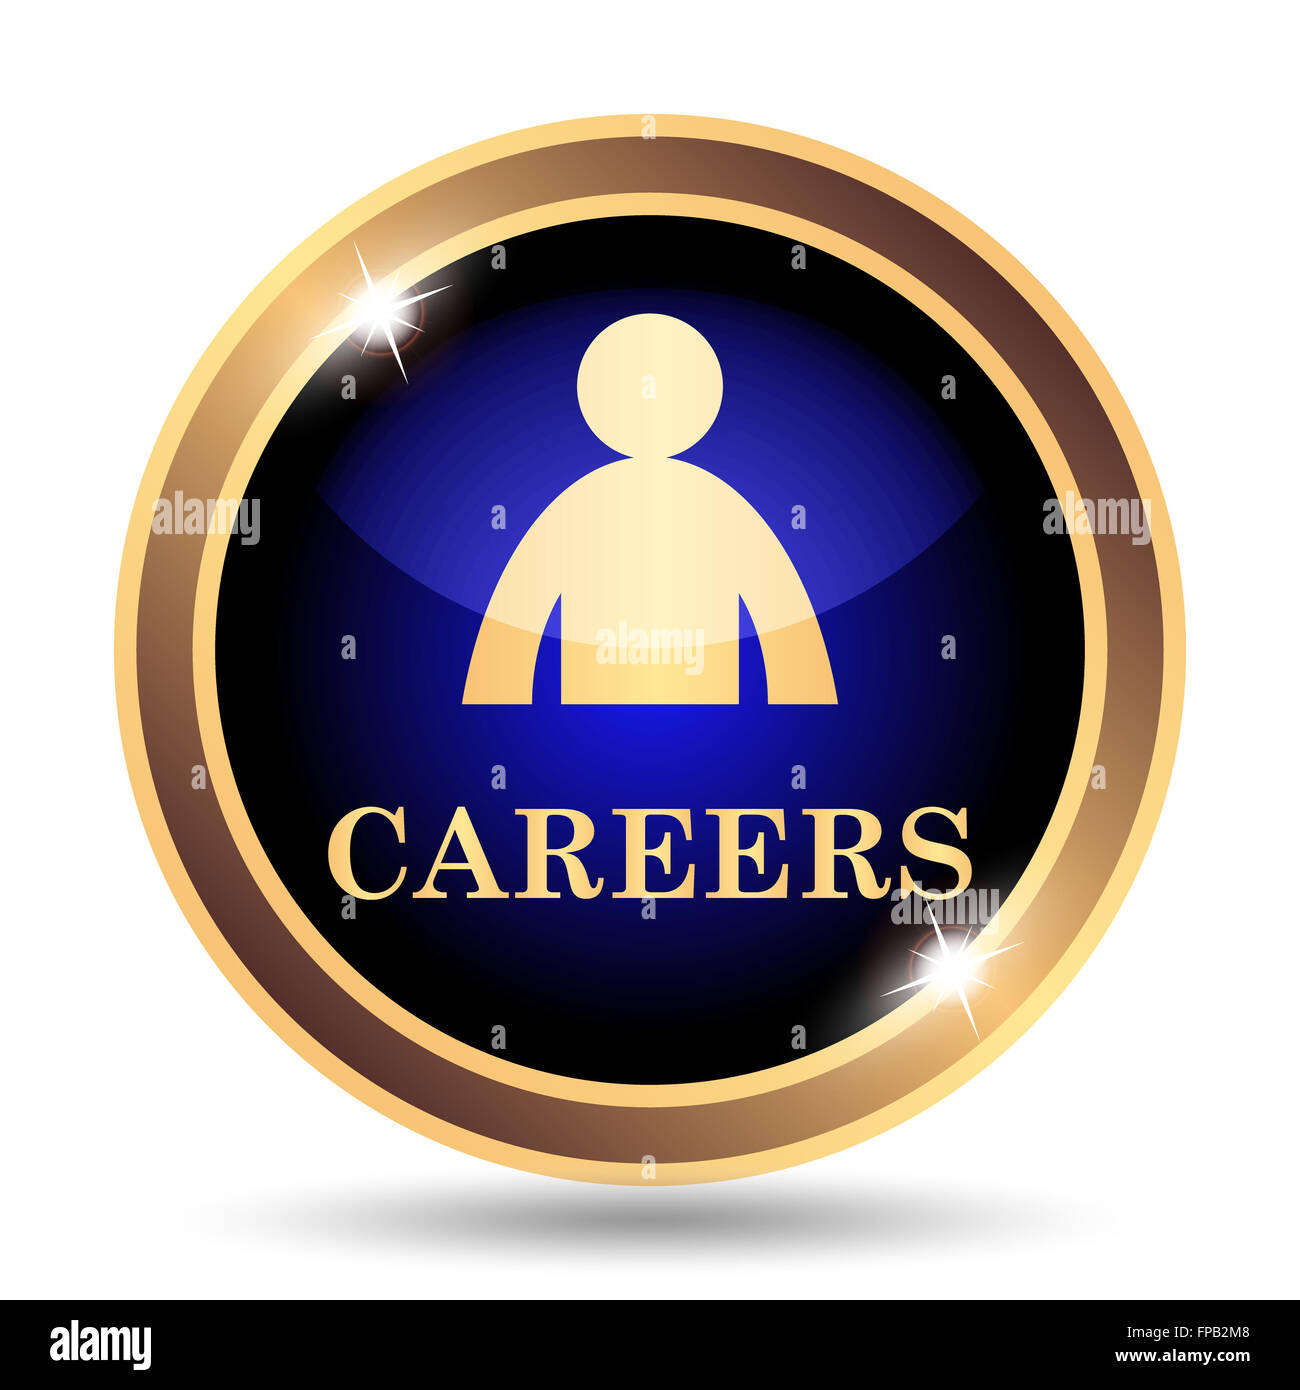 Careers icon. Internet button on white background. - Stock Image